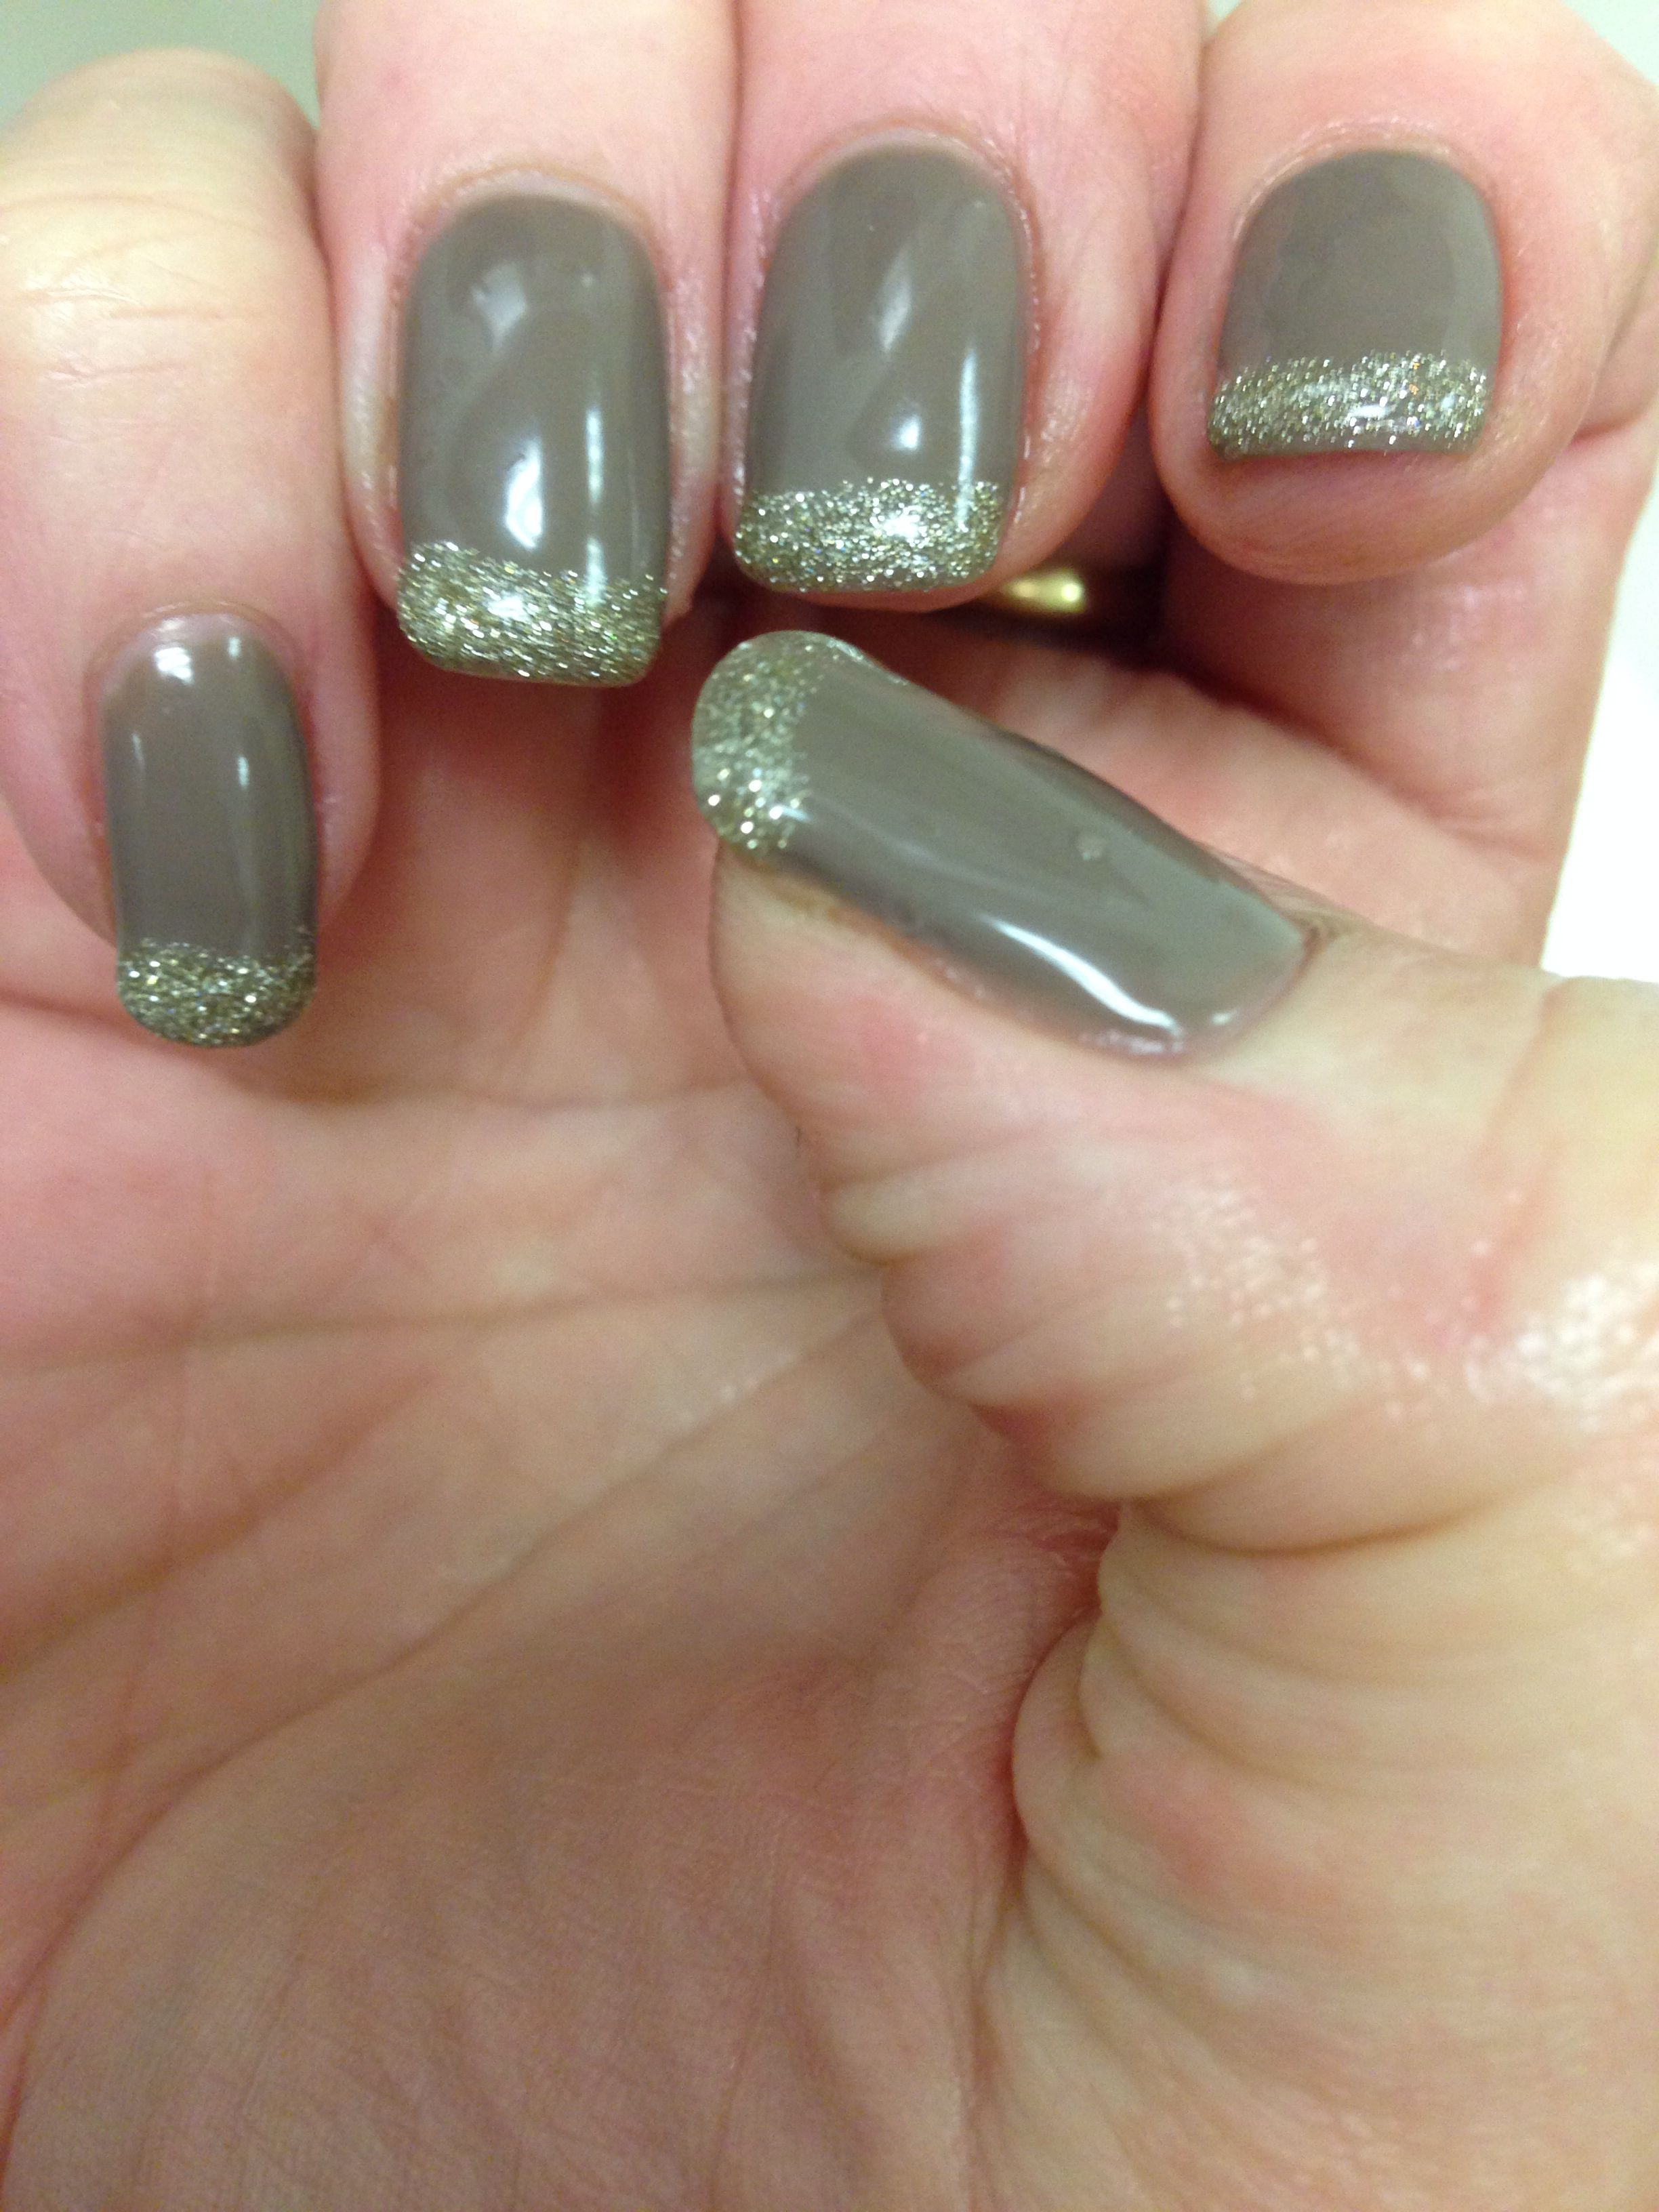 Sharon's nails brown with a hint of glitter